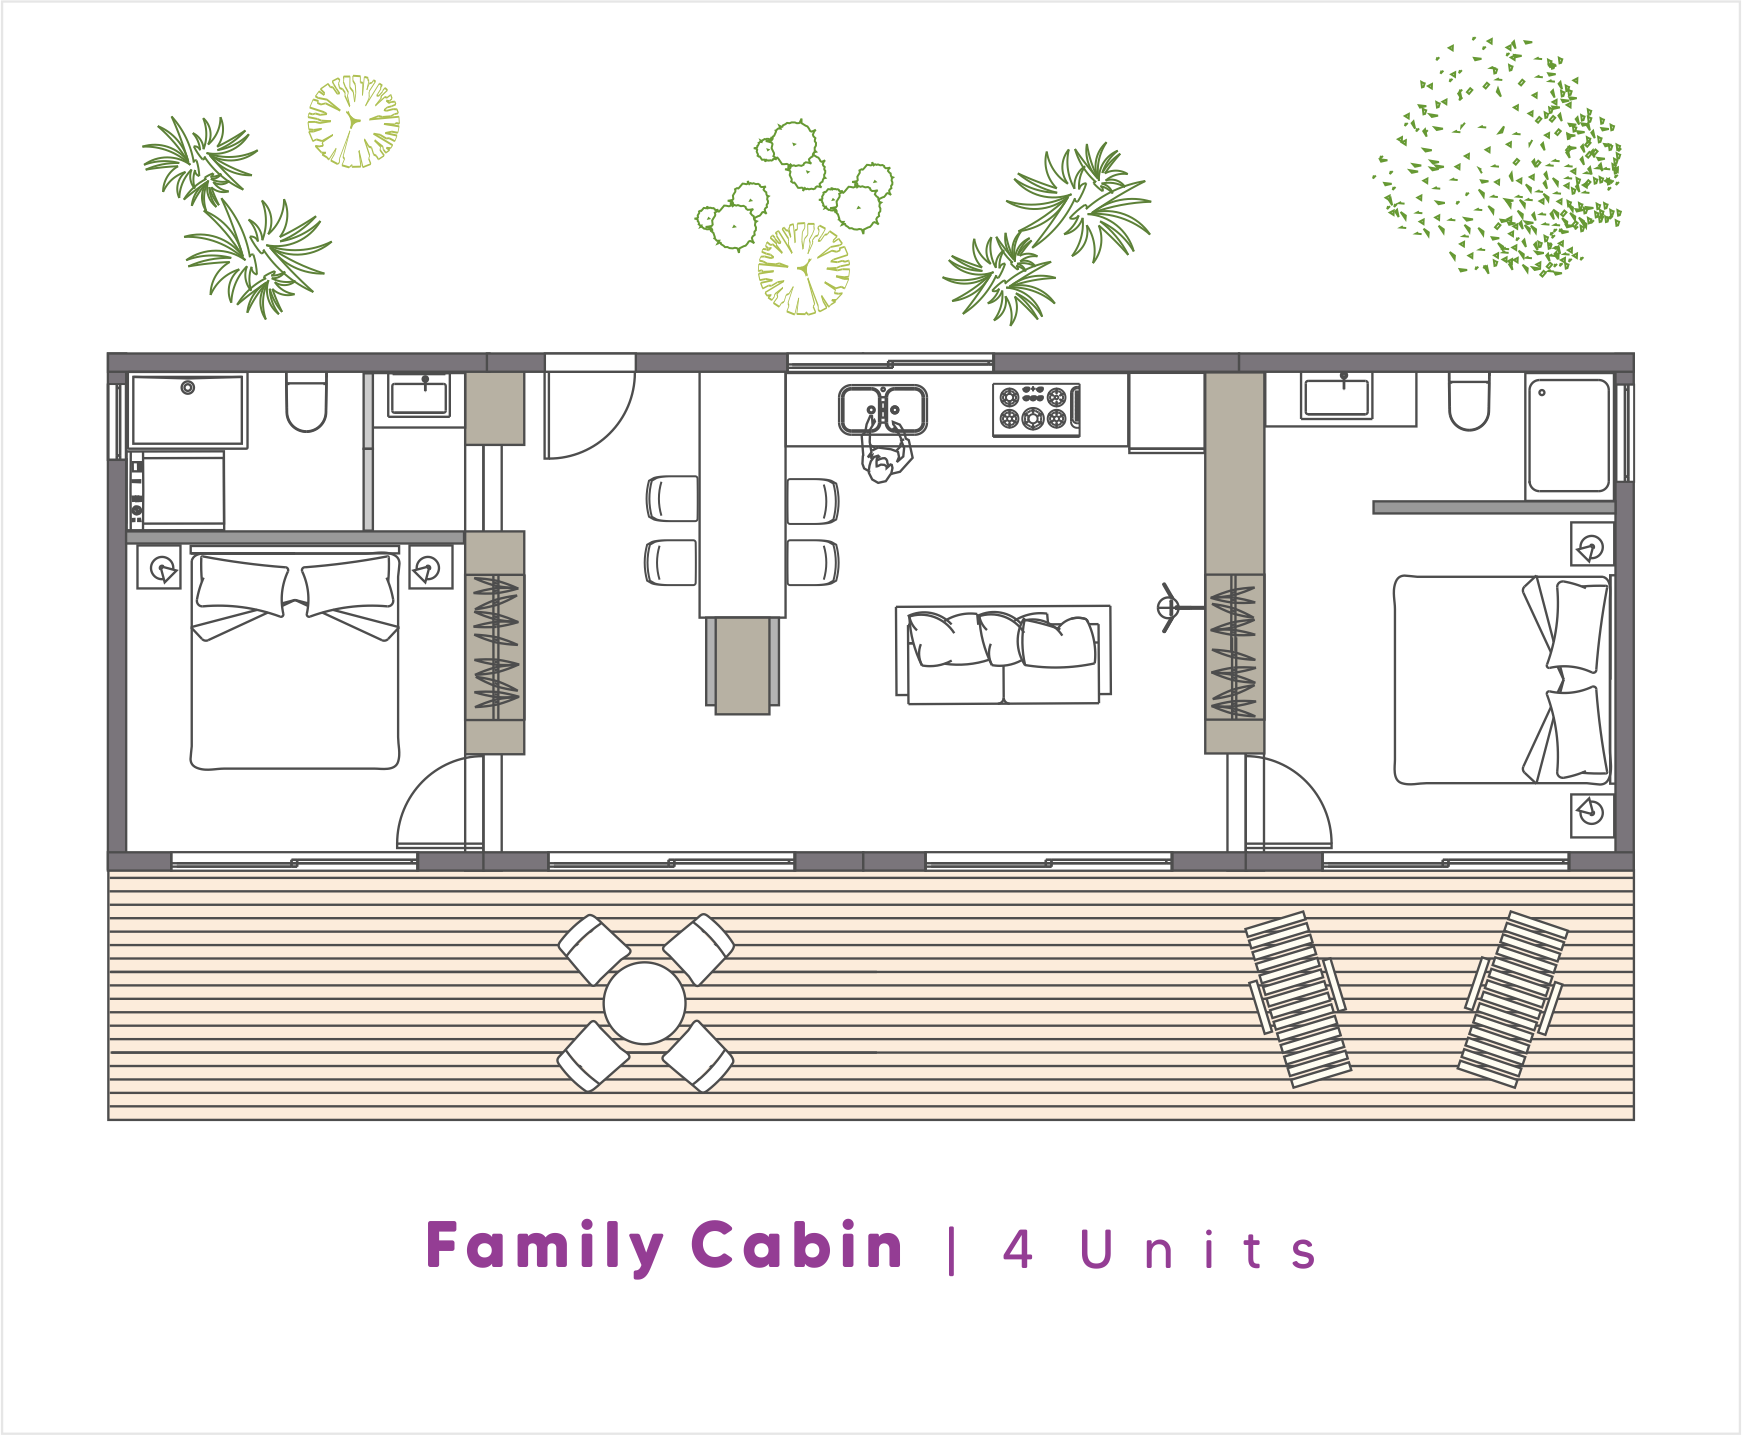 NoRootsHomes Modular Eco Home | Family Cabin | 4 Units